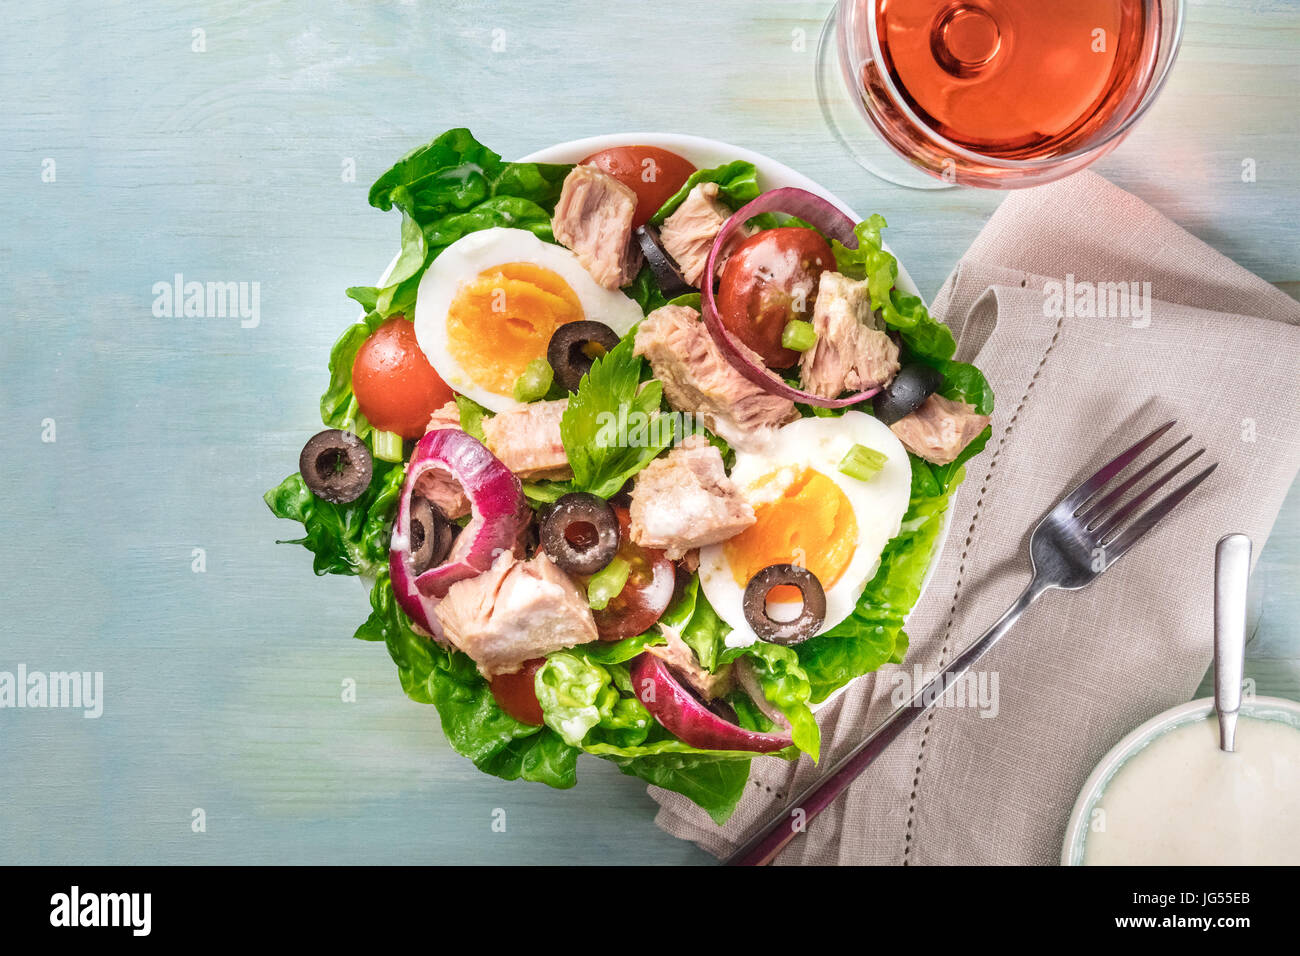 Overhead photo of a plate of salad with canned tuna, boiled eggs, green lettuce leaves, onions, black olives, and - Stock Image